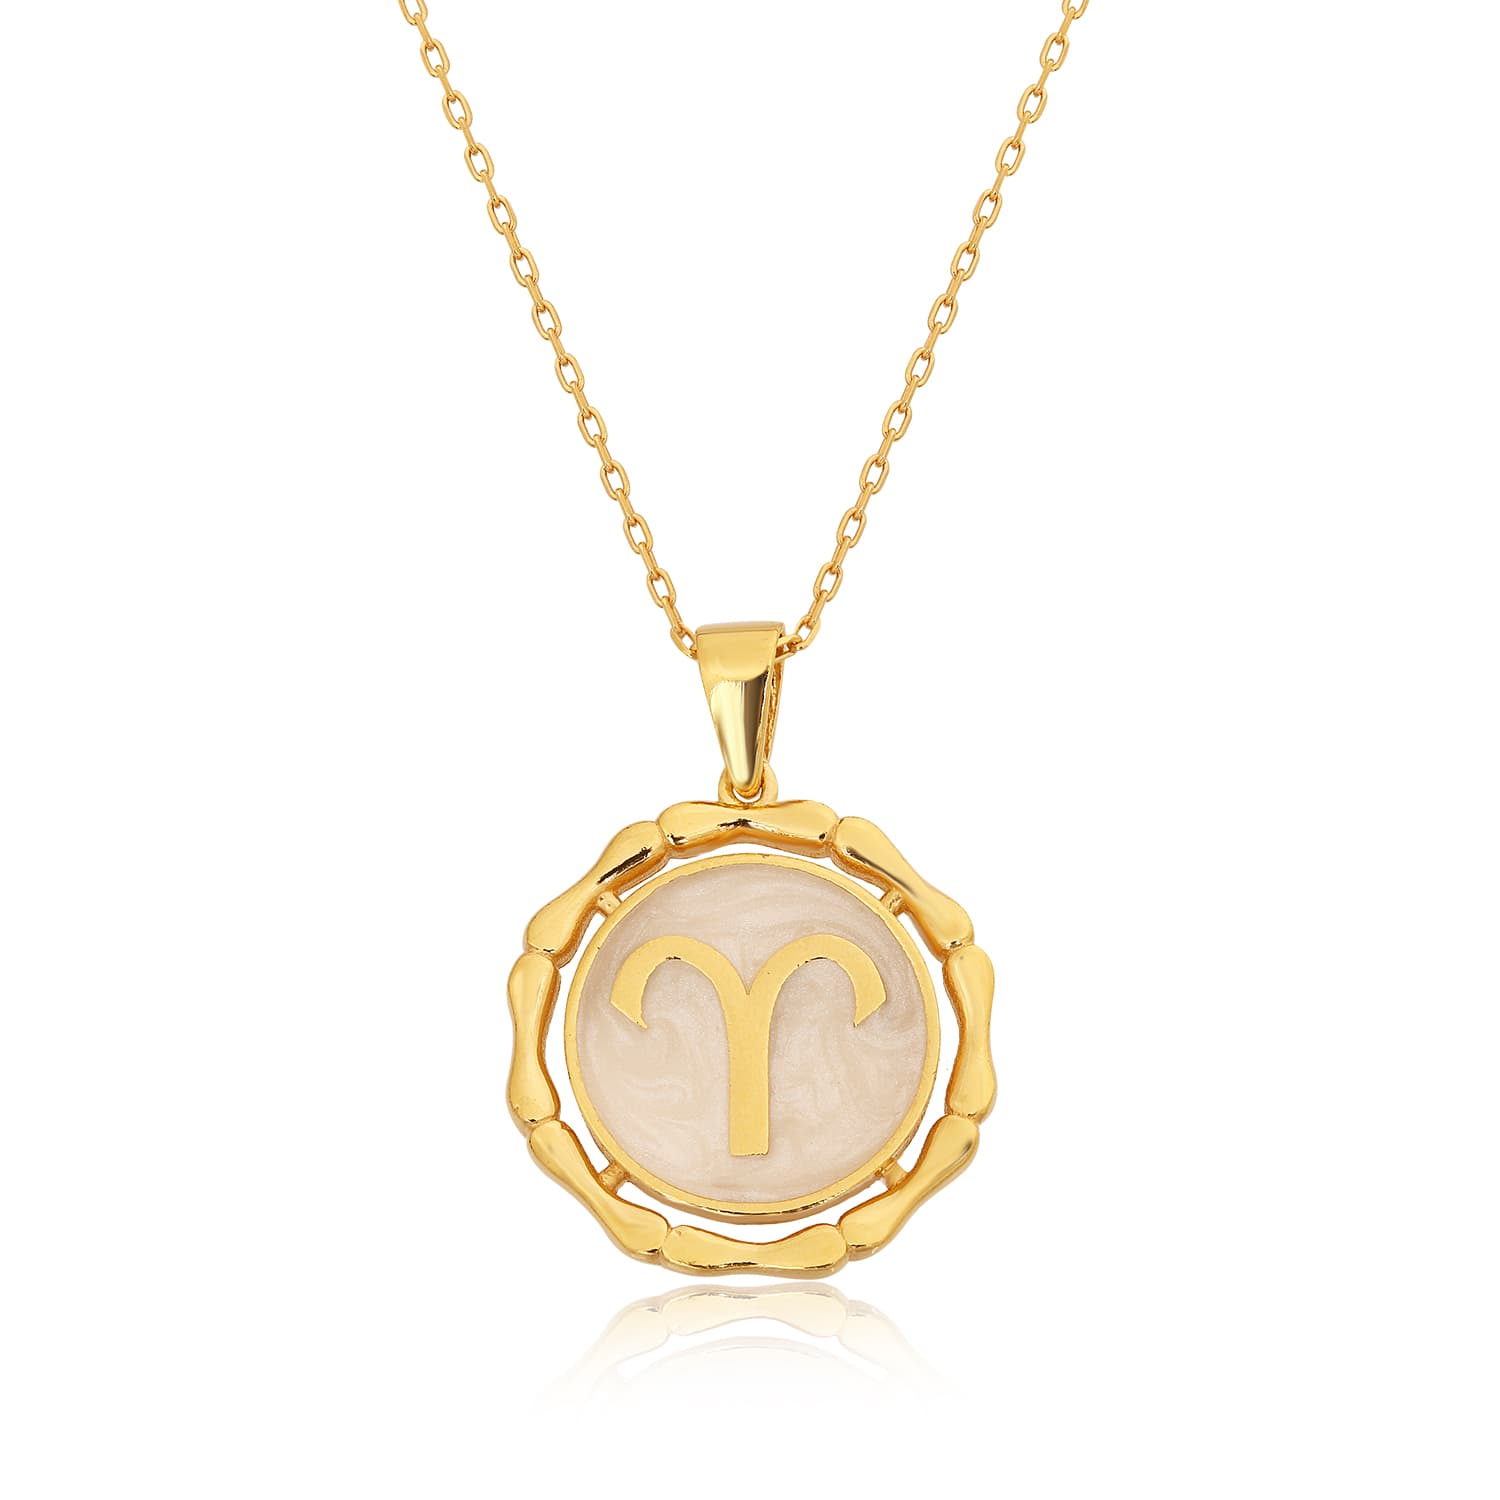 Aries MINI NECKLACE